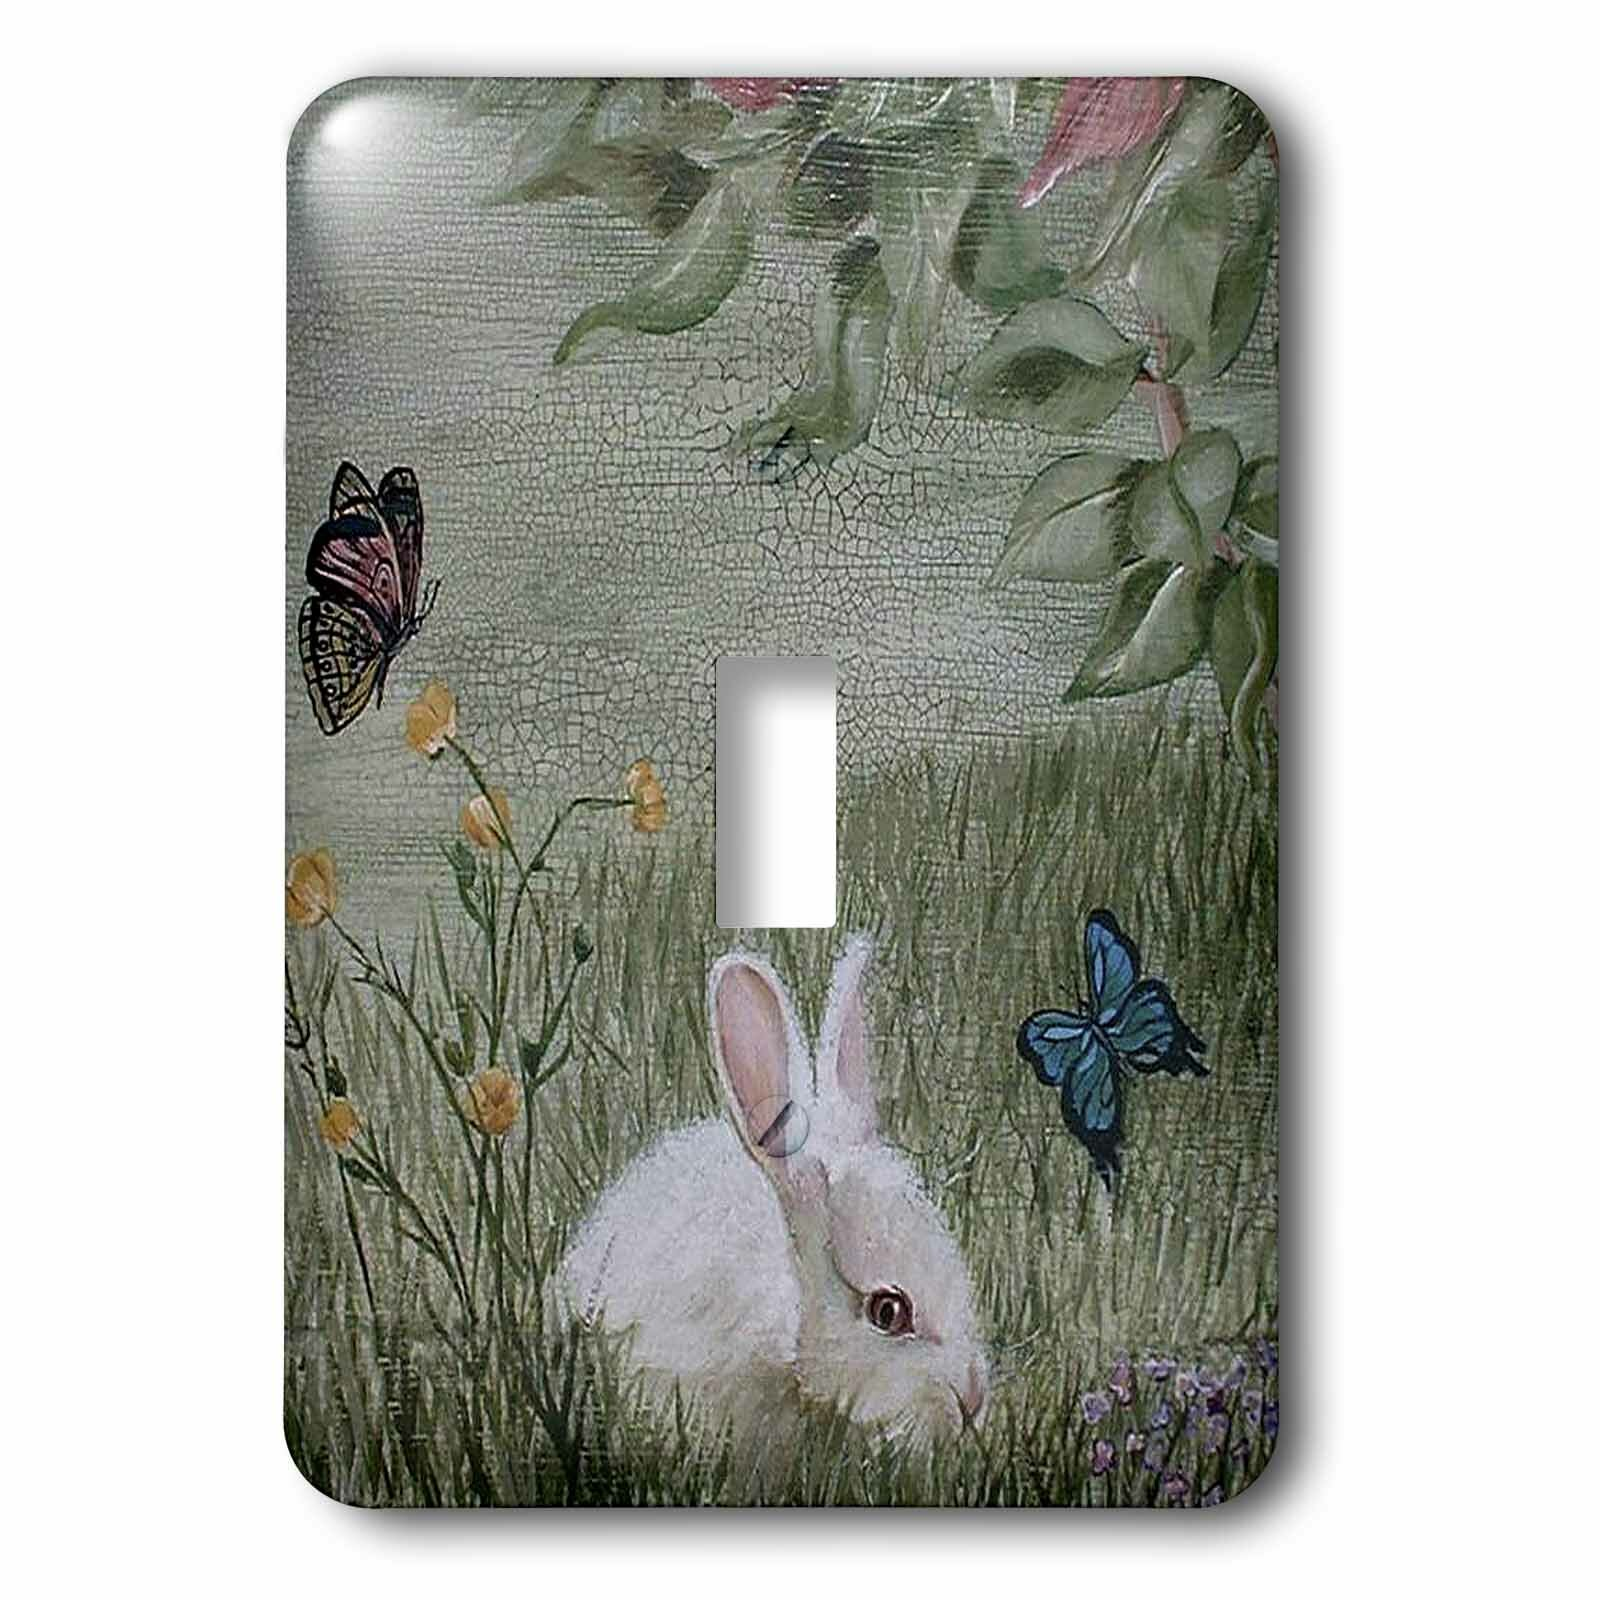 3drose Bunny Rabbit In Grass With Butterflies 1 Gang Toggle Light Switch Wall Plate Wayfair